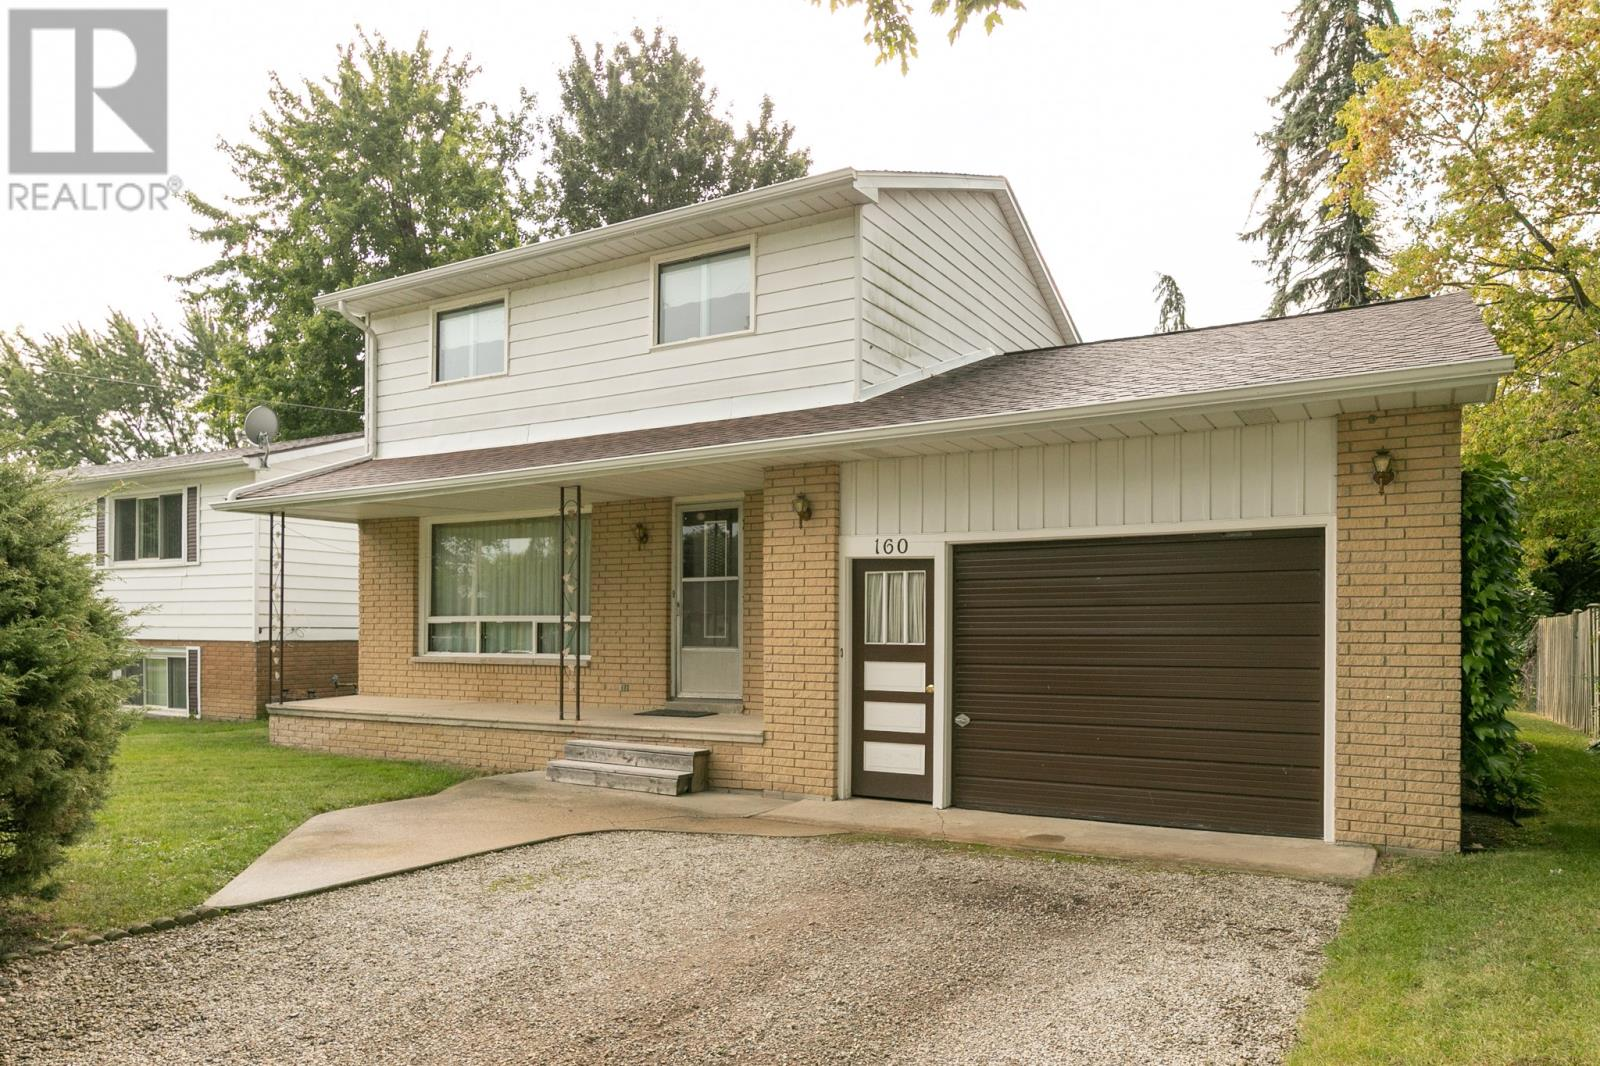 Removed: 160 11th, Belle River, ON - Removed on 2019-09-19 06:03:17